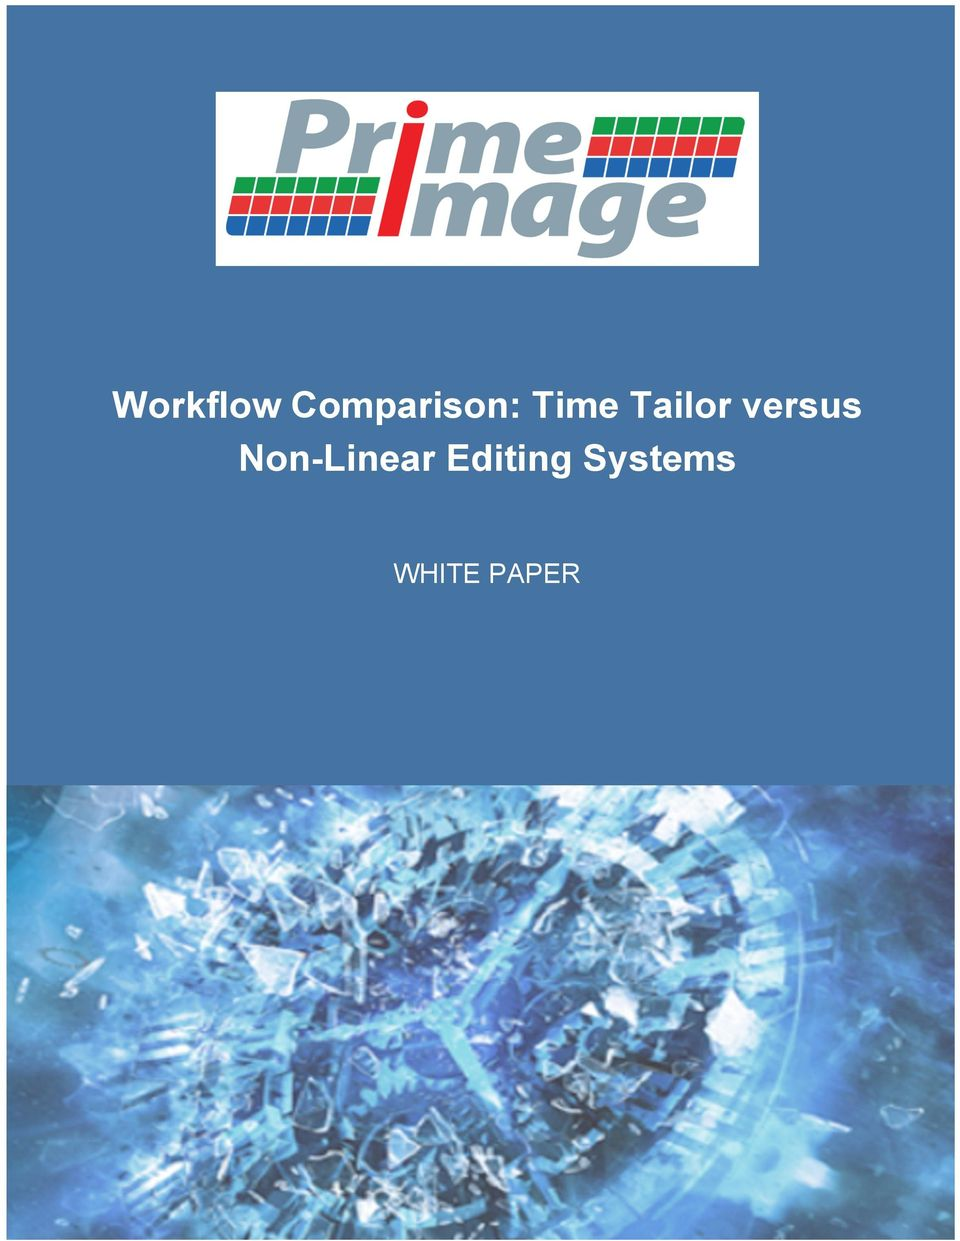 Editing Systems WHITE PAPER